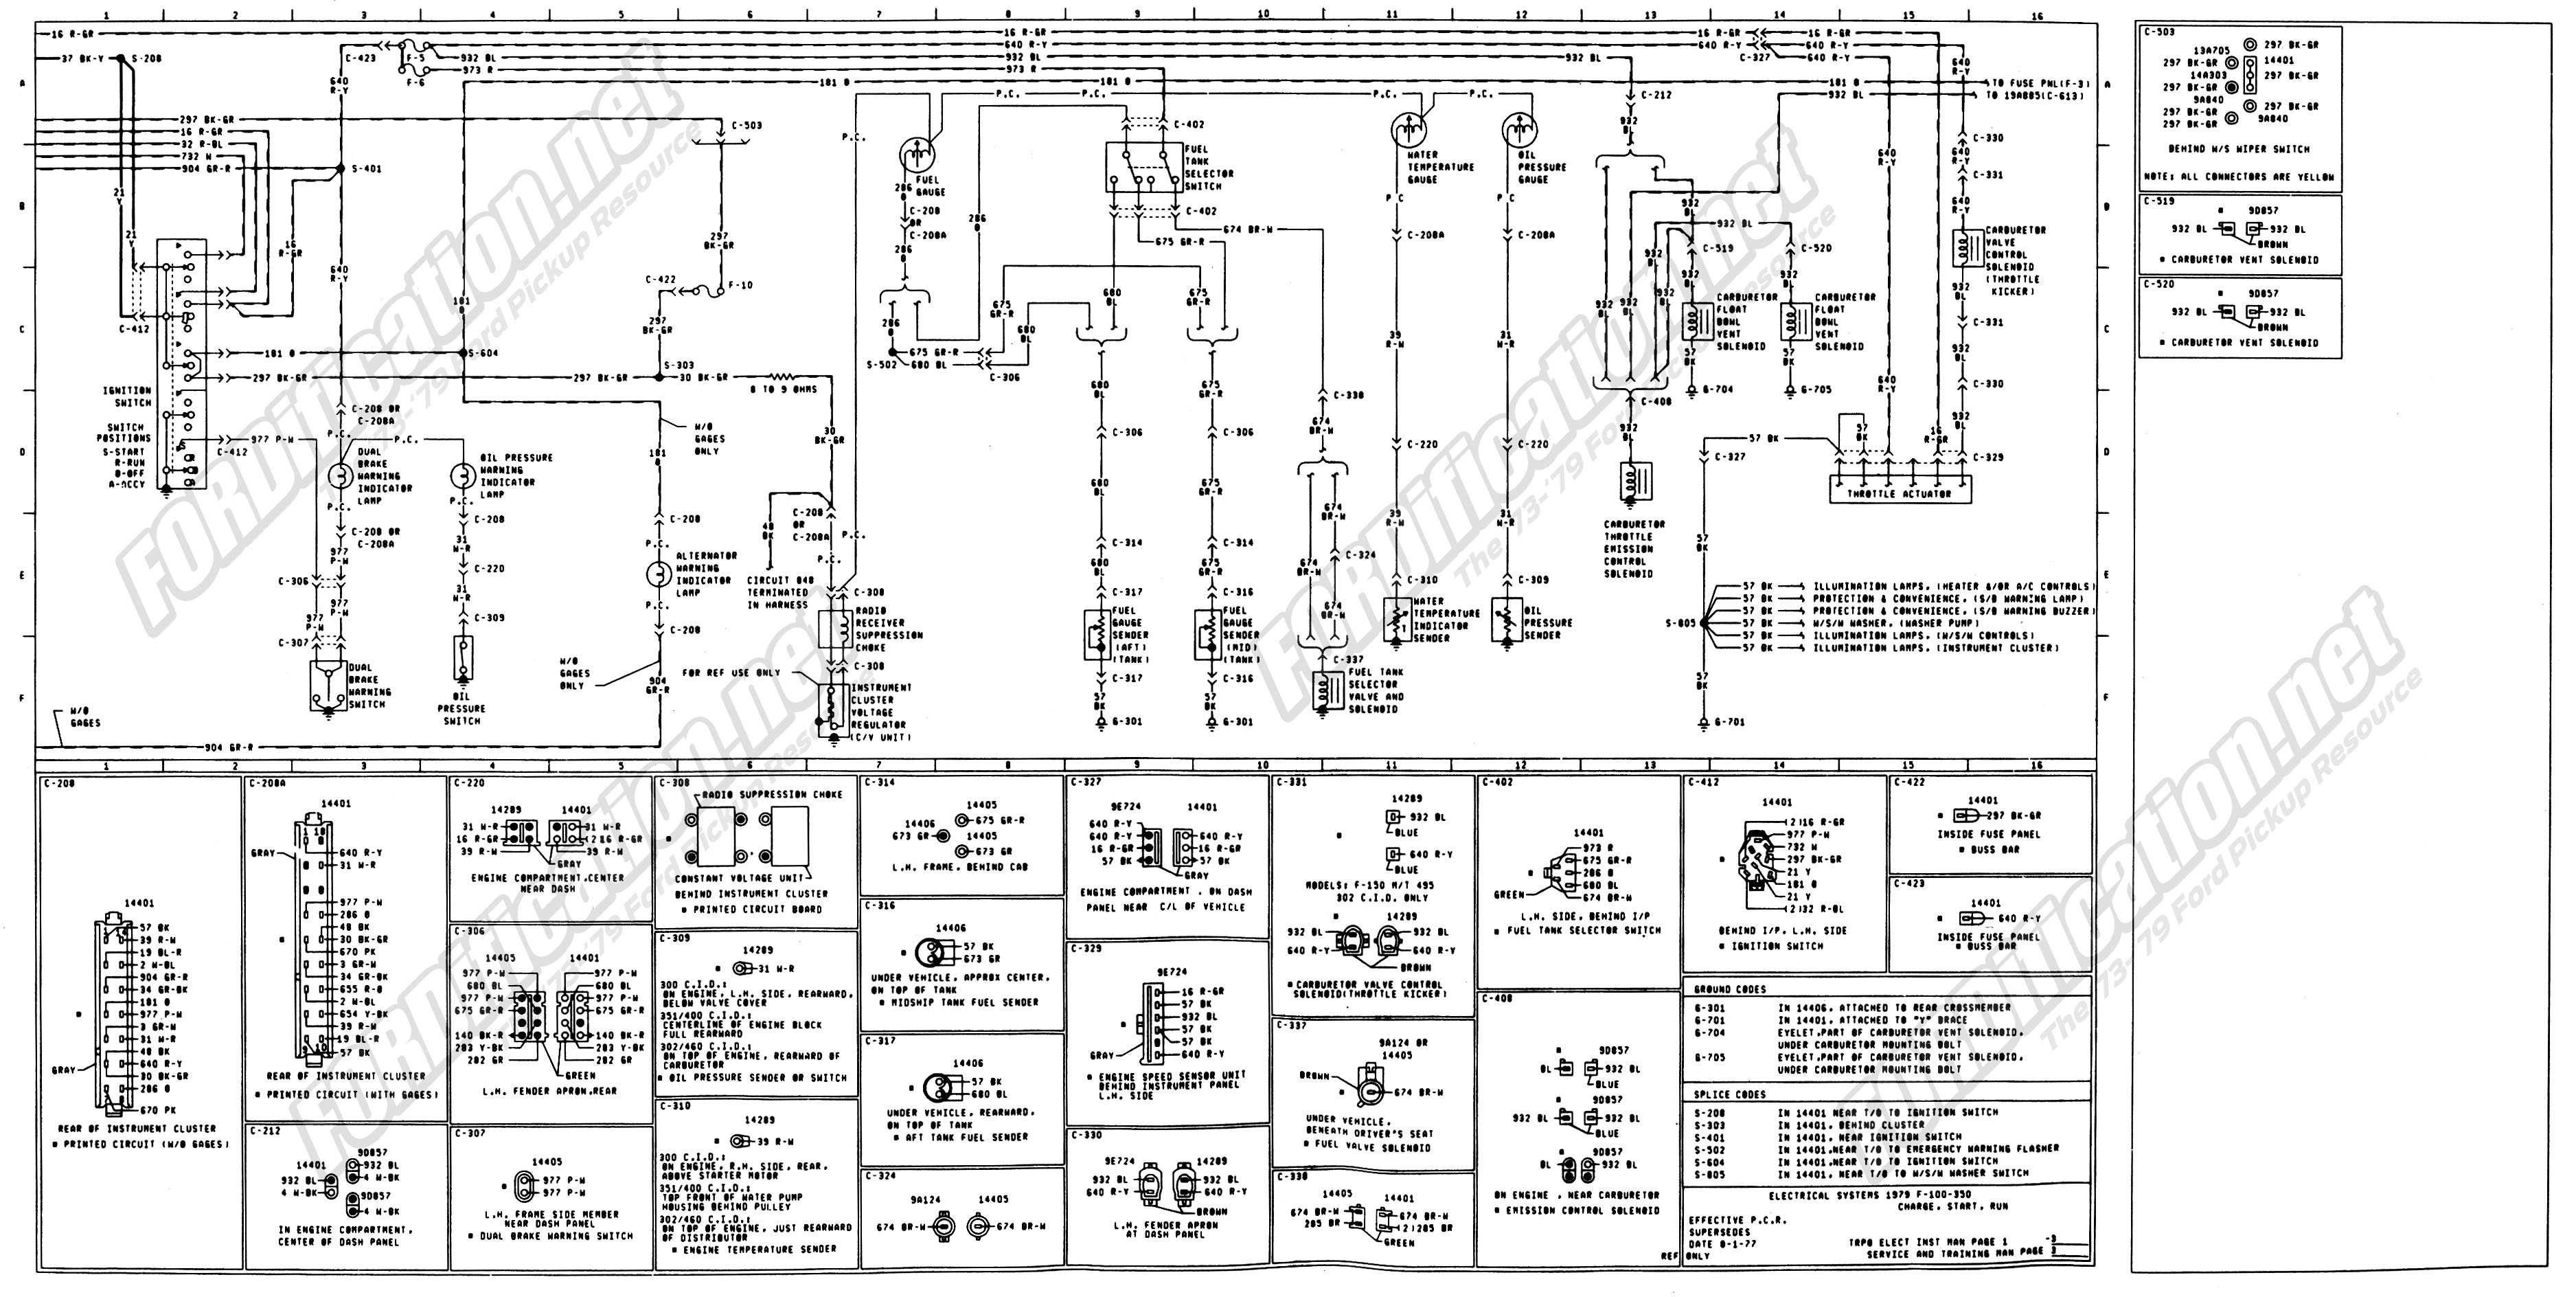 wiring_79master_3of9 2004 ford escape tail light wiring diagram wiring diagram and ford escape trailer wiring diagram at nearapp.co